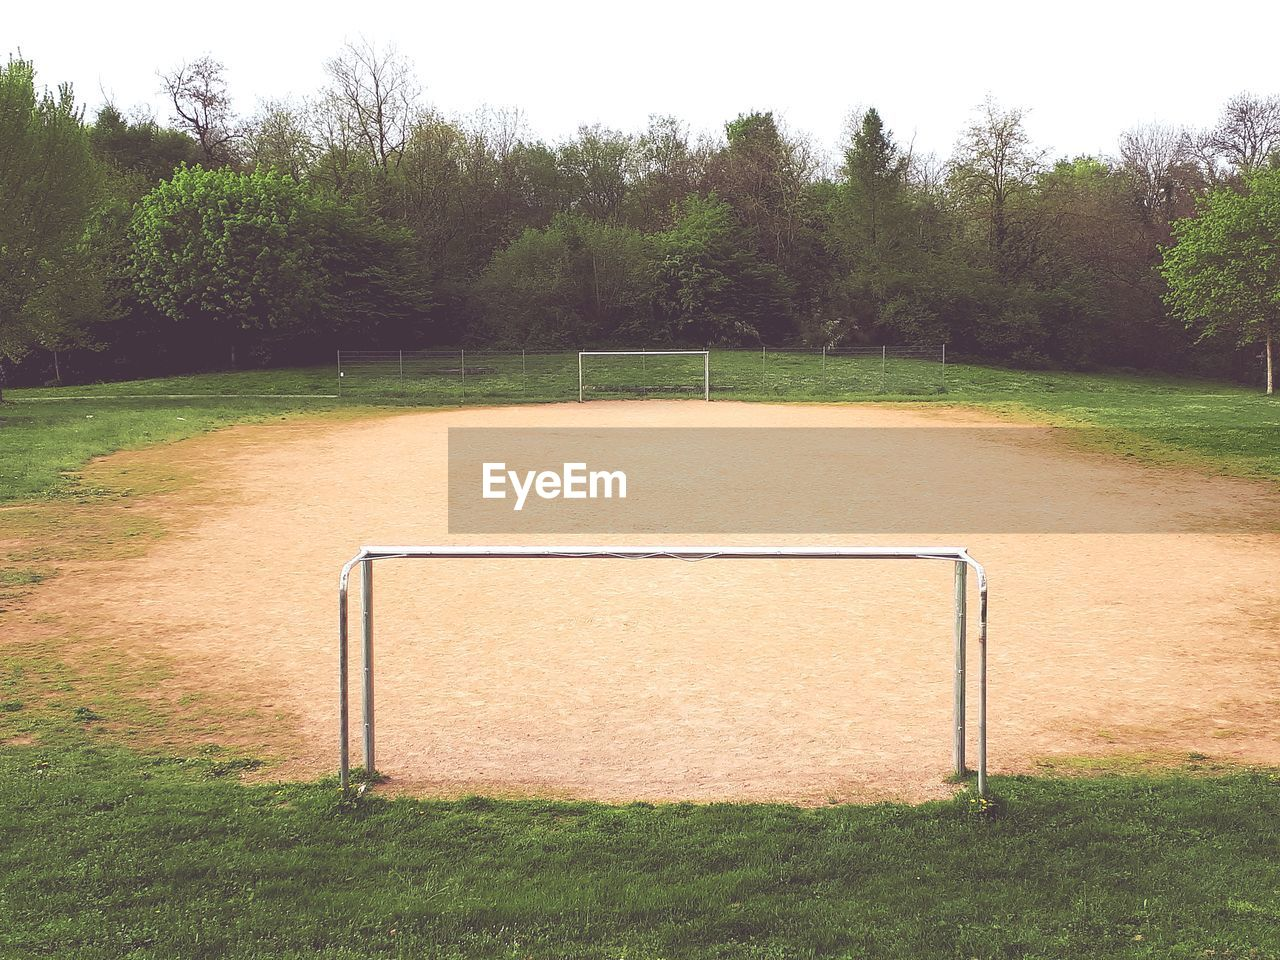 plant, grass, tree, sport, team sport, playing field, nature, soccer, land, day, field, soccer field, tranquility, soccer goal, growth, goal post, no people, football, absence, empty, outdoors